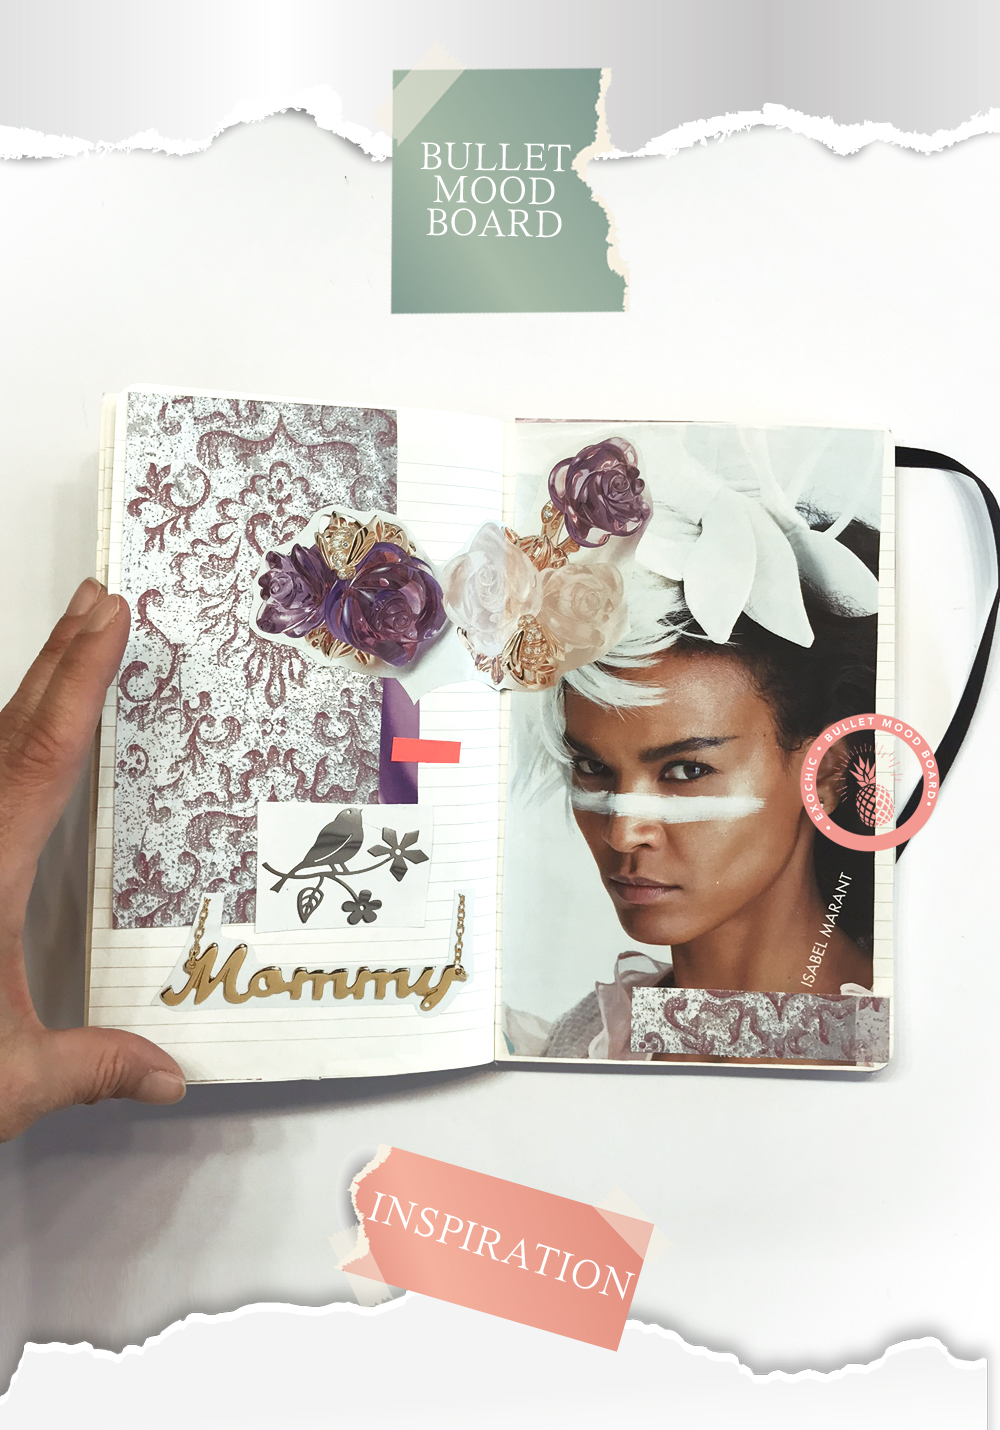 Air Chic Design:disque externe:EXOChic:1 -POSTS:1 - ARTICLES:2018:03 - MARS:03 Vision BOARD:Image blog:Bullet mood board exochic 5.jpg